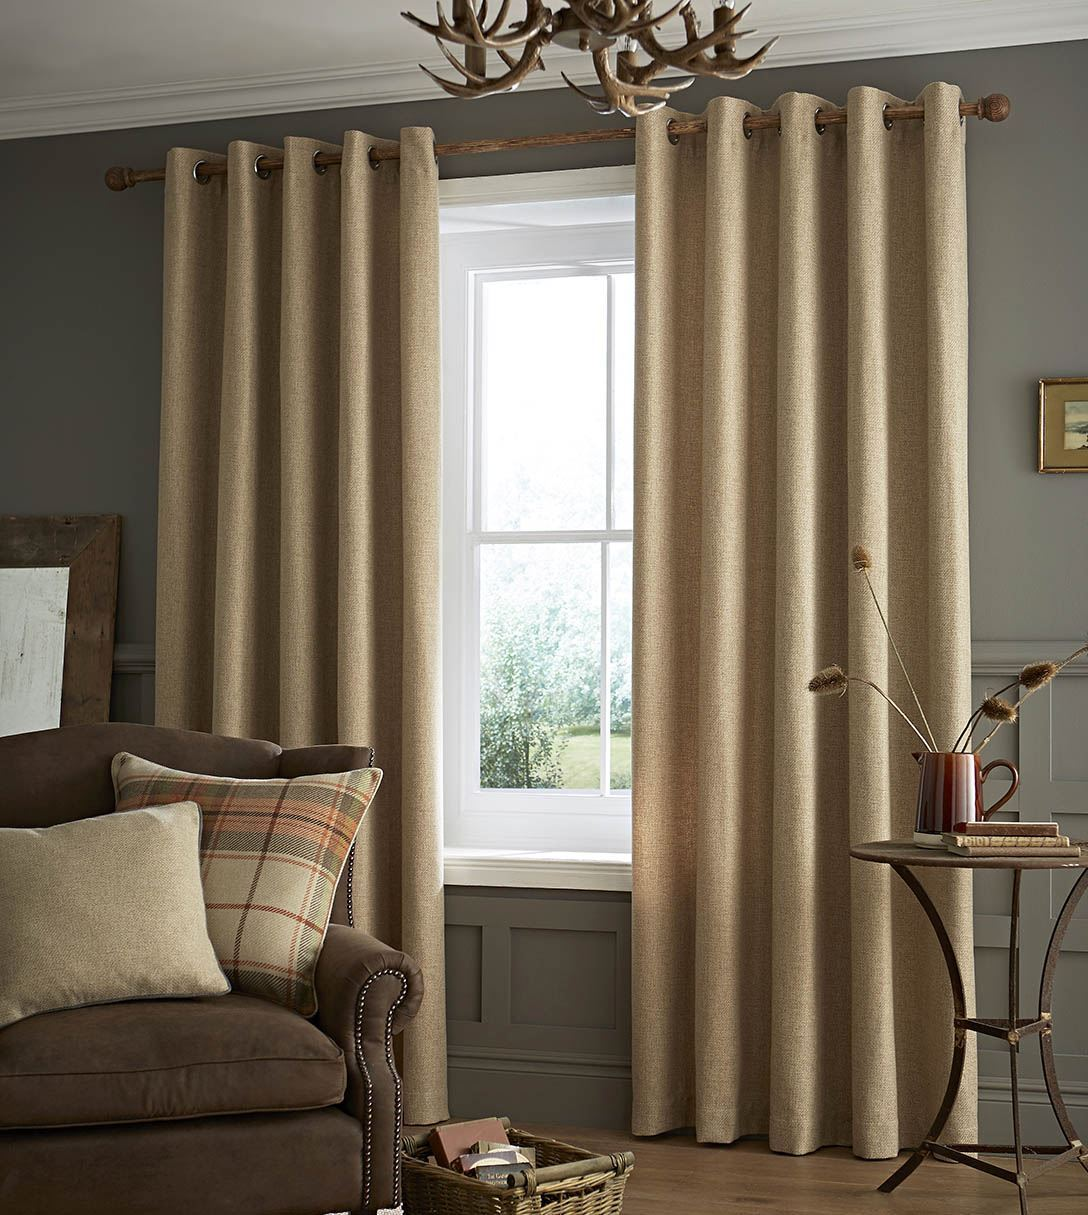 Brushed Heritage Plain Curtains, Fully Lined Ring Top Eyelet ...